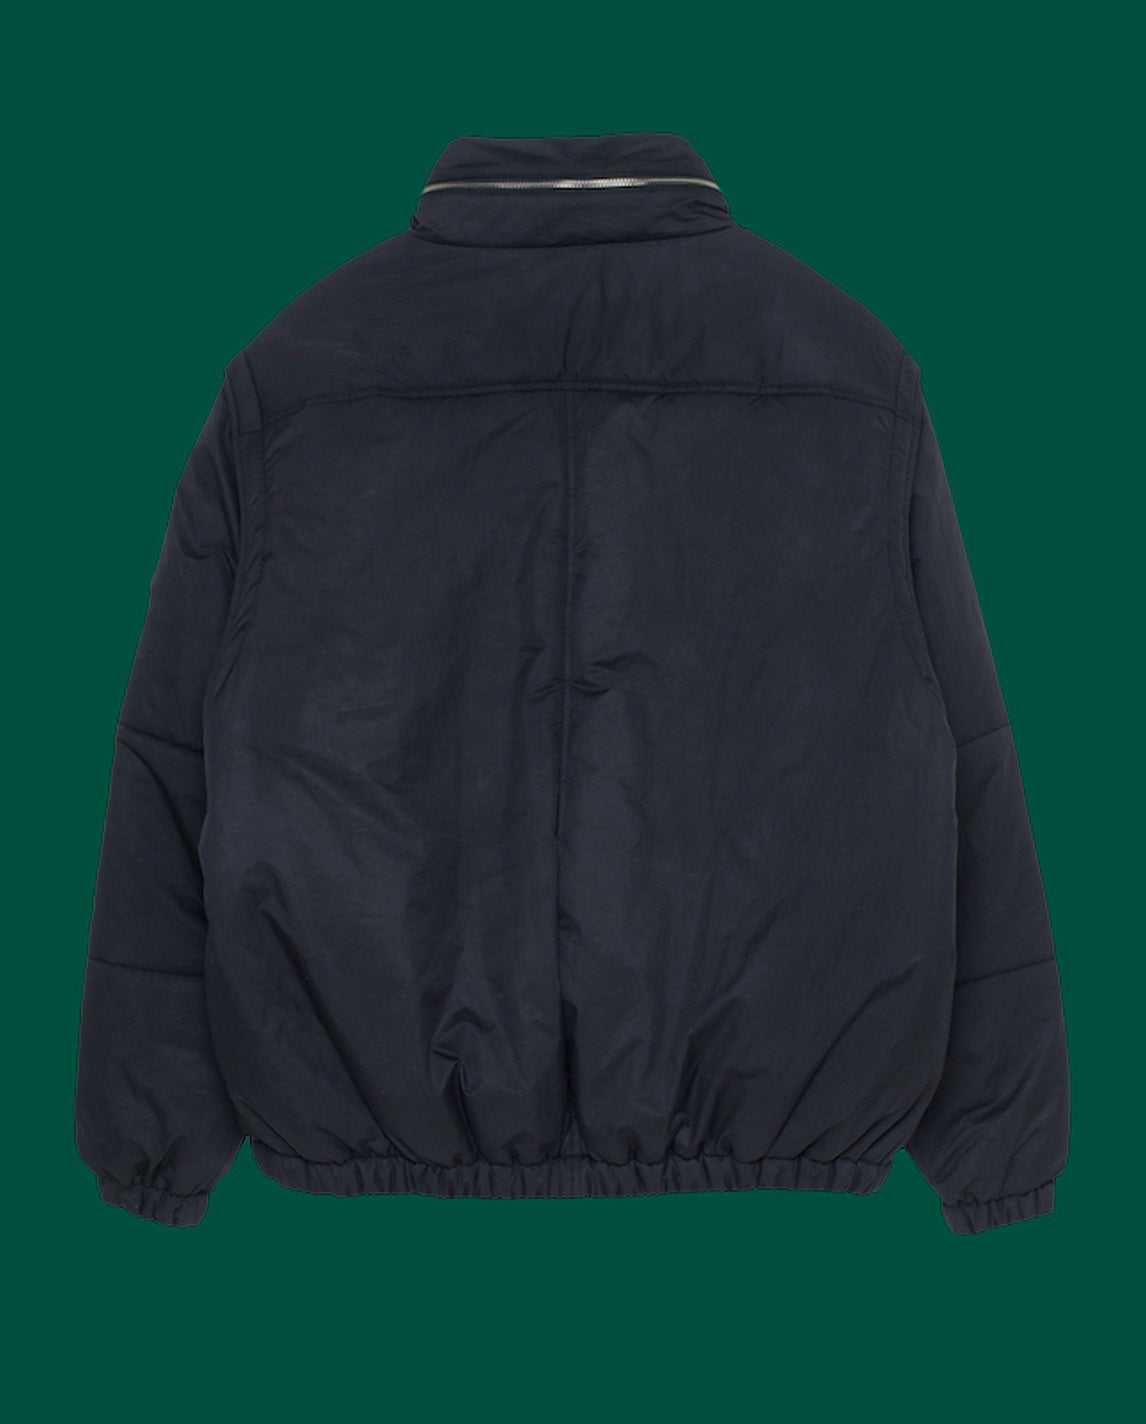 Detachable Sleeve Bomber Jacket - Black UNISEX CAV EMPT